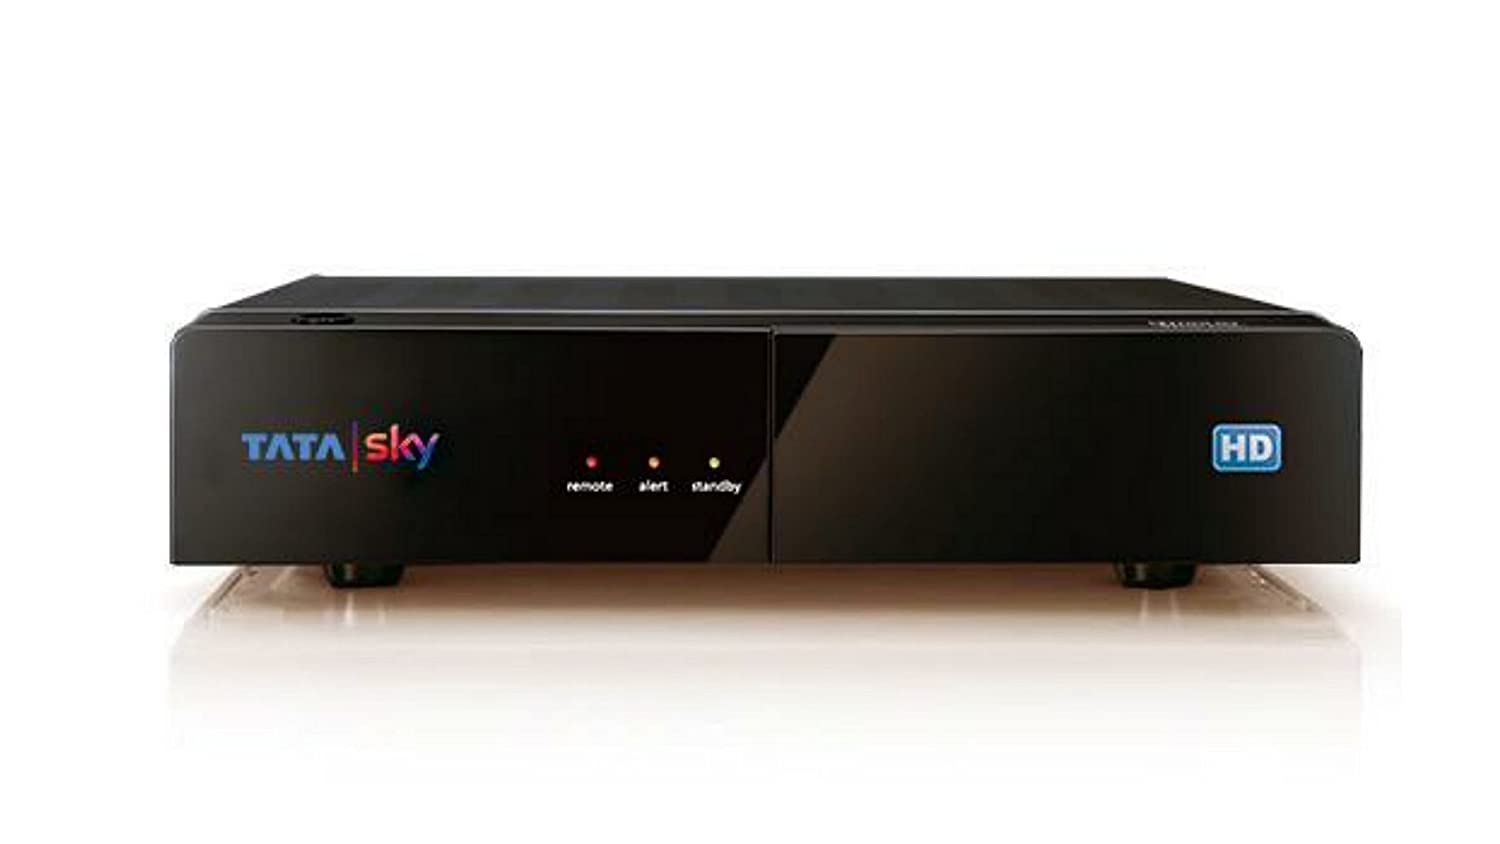 Tata Sky Hd Set Top Box Electronics Basic House Wiring Books